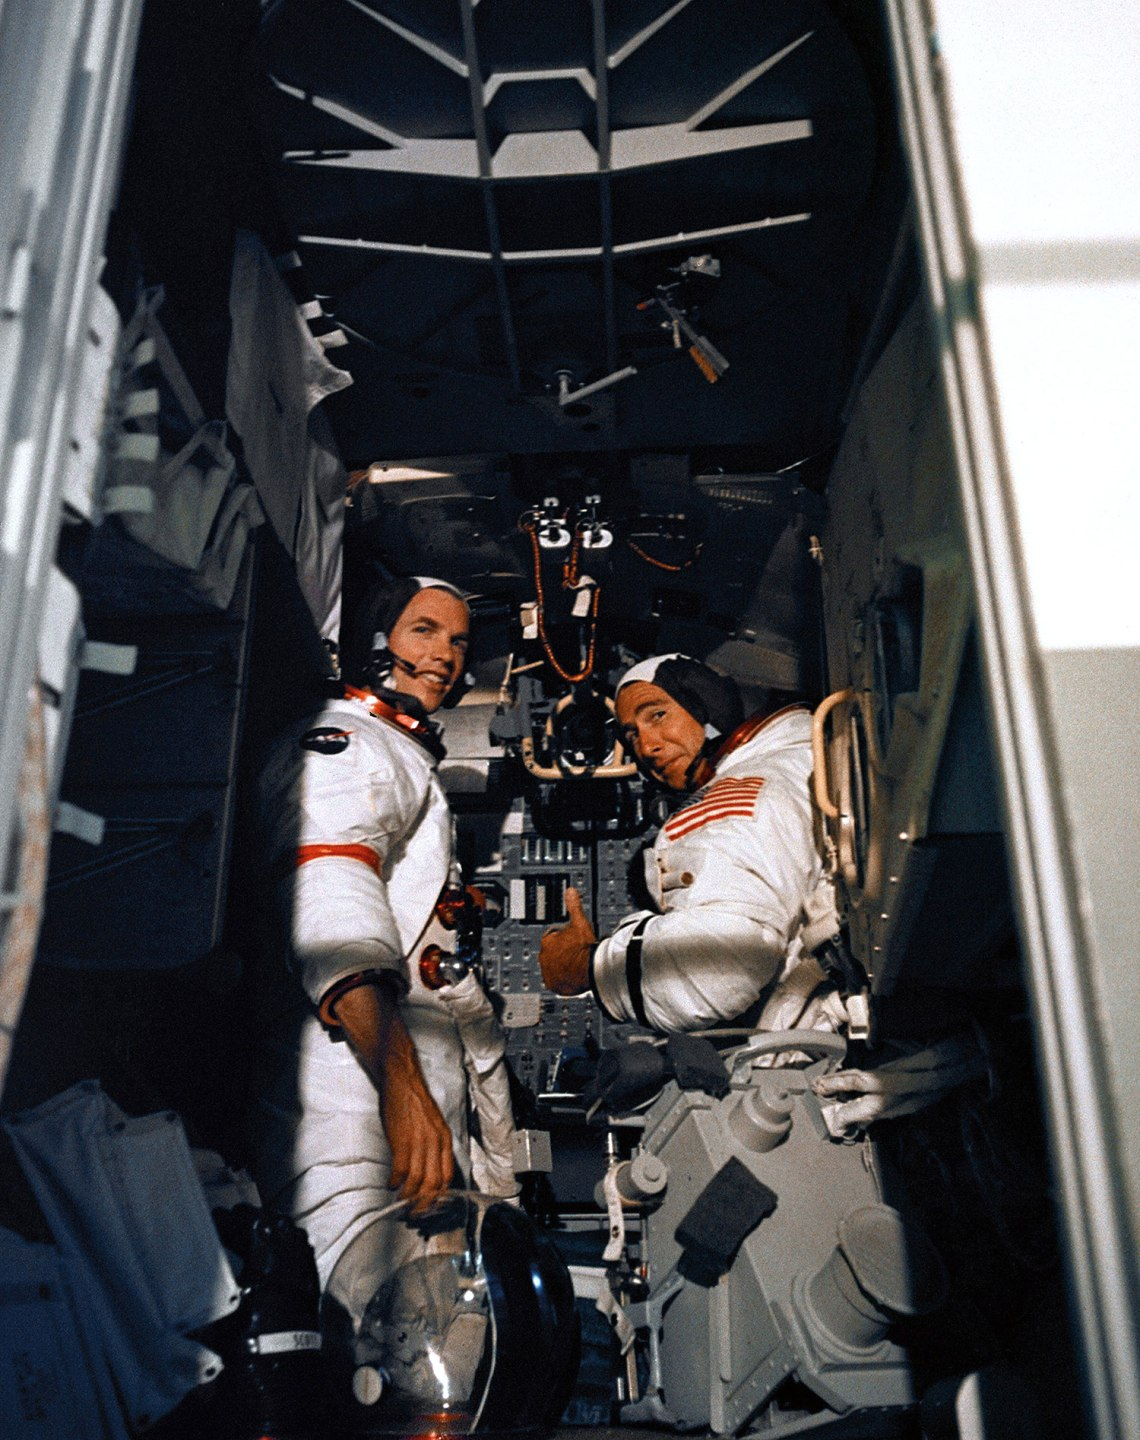 Dave Scott and Jim Irwin in the LM simulator.  Credit: NASA via Retro Space Images